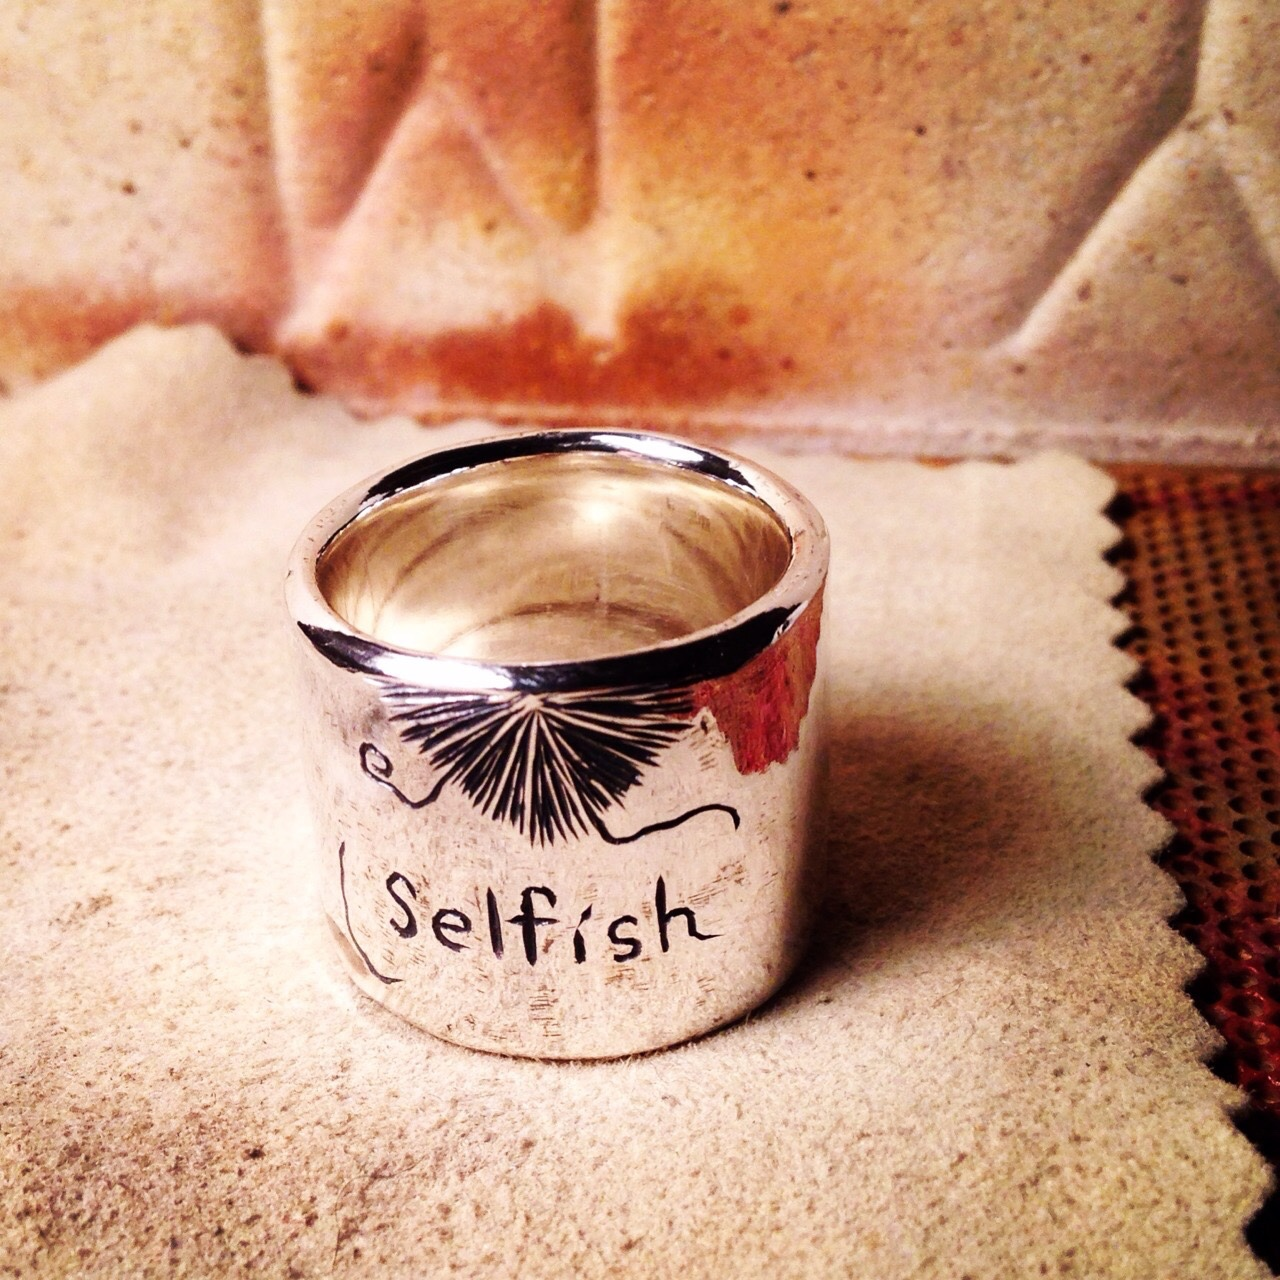 Selfish ring